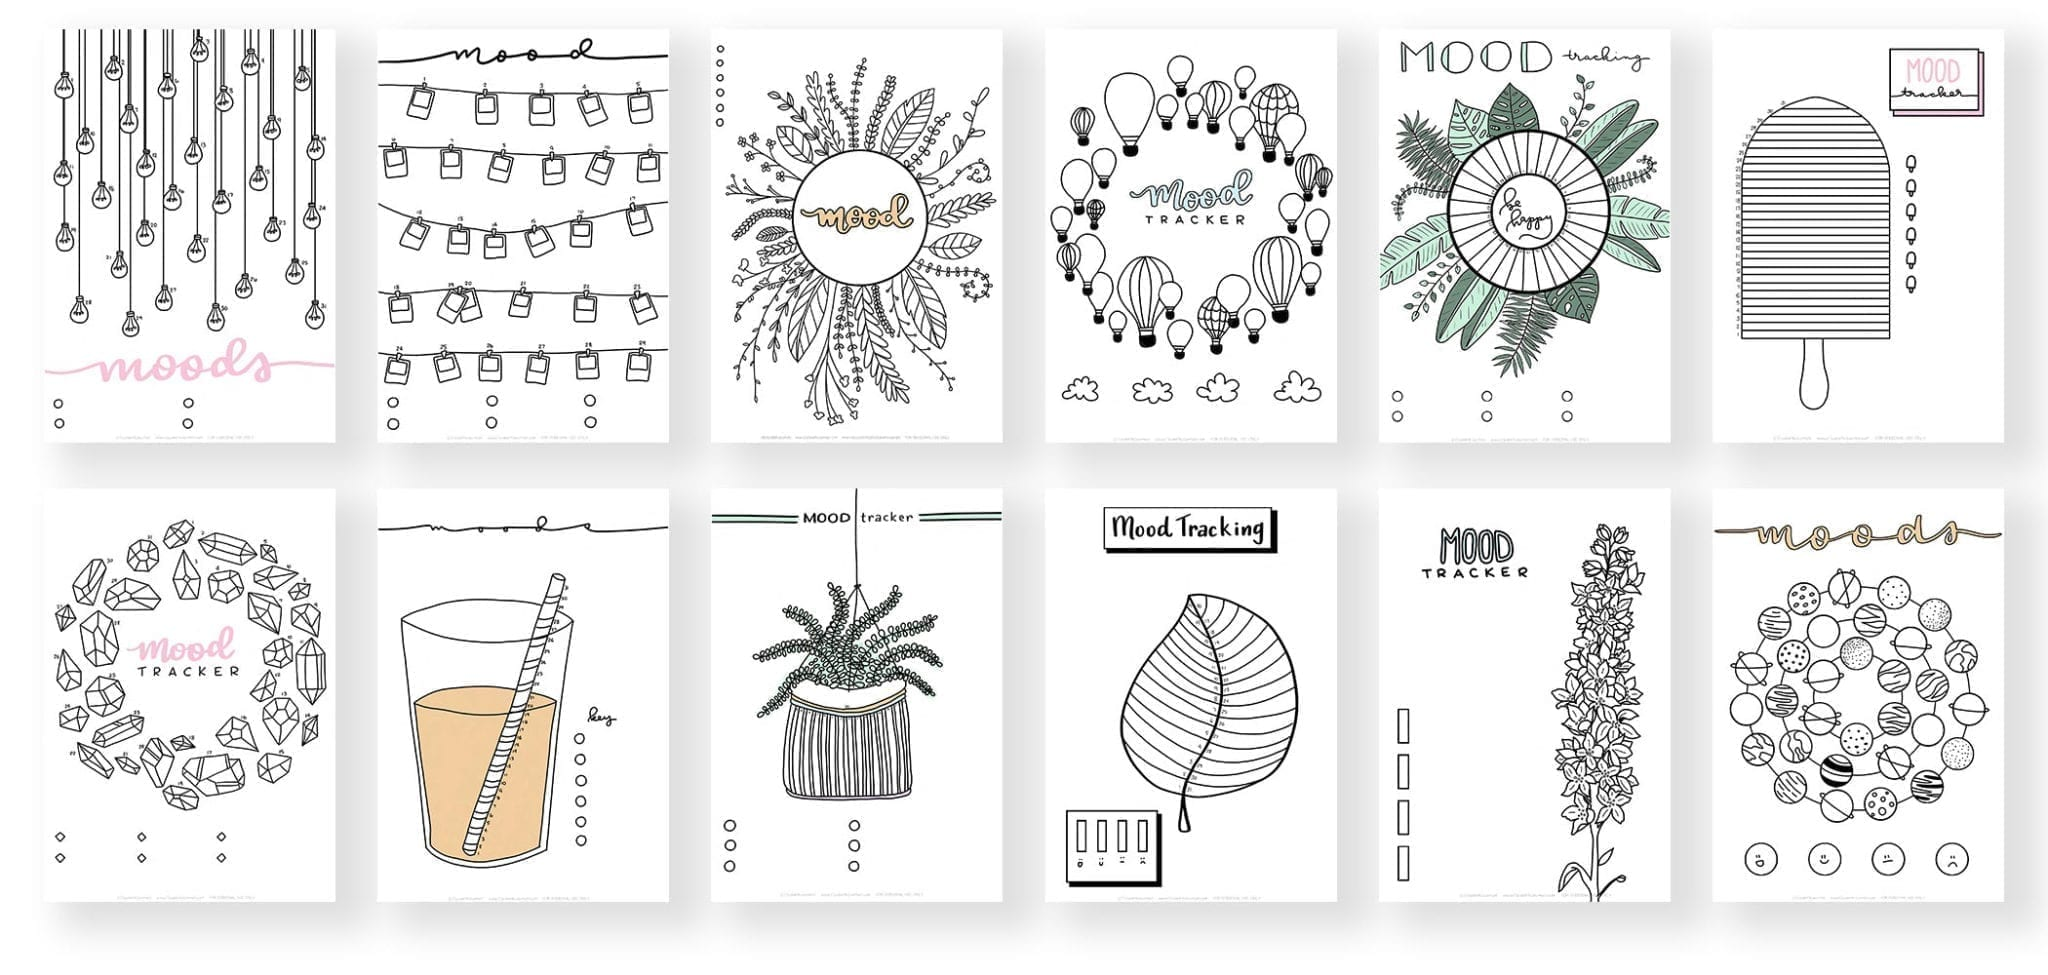 banner 7-mood trackers